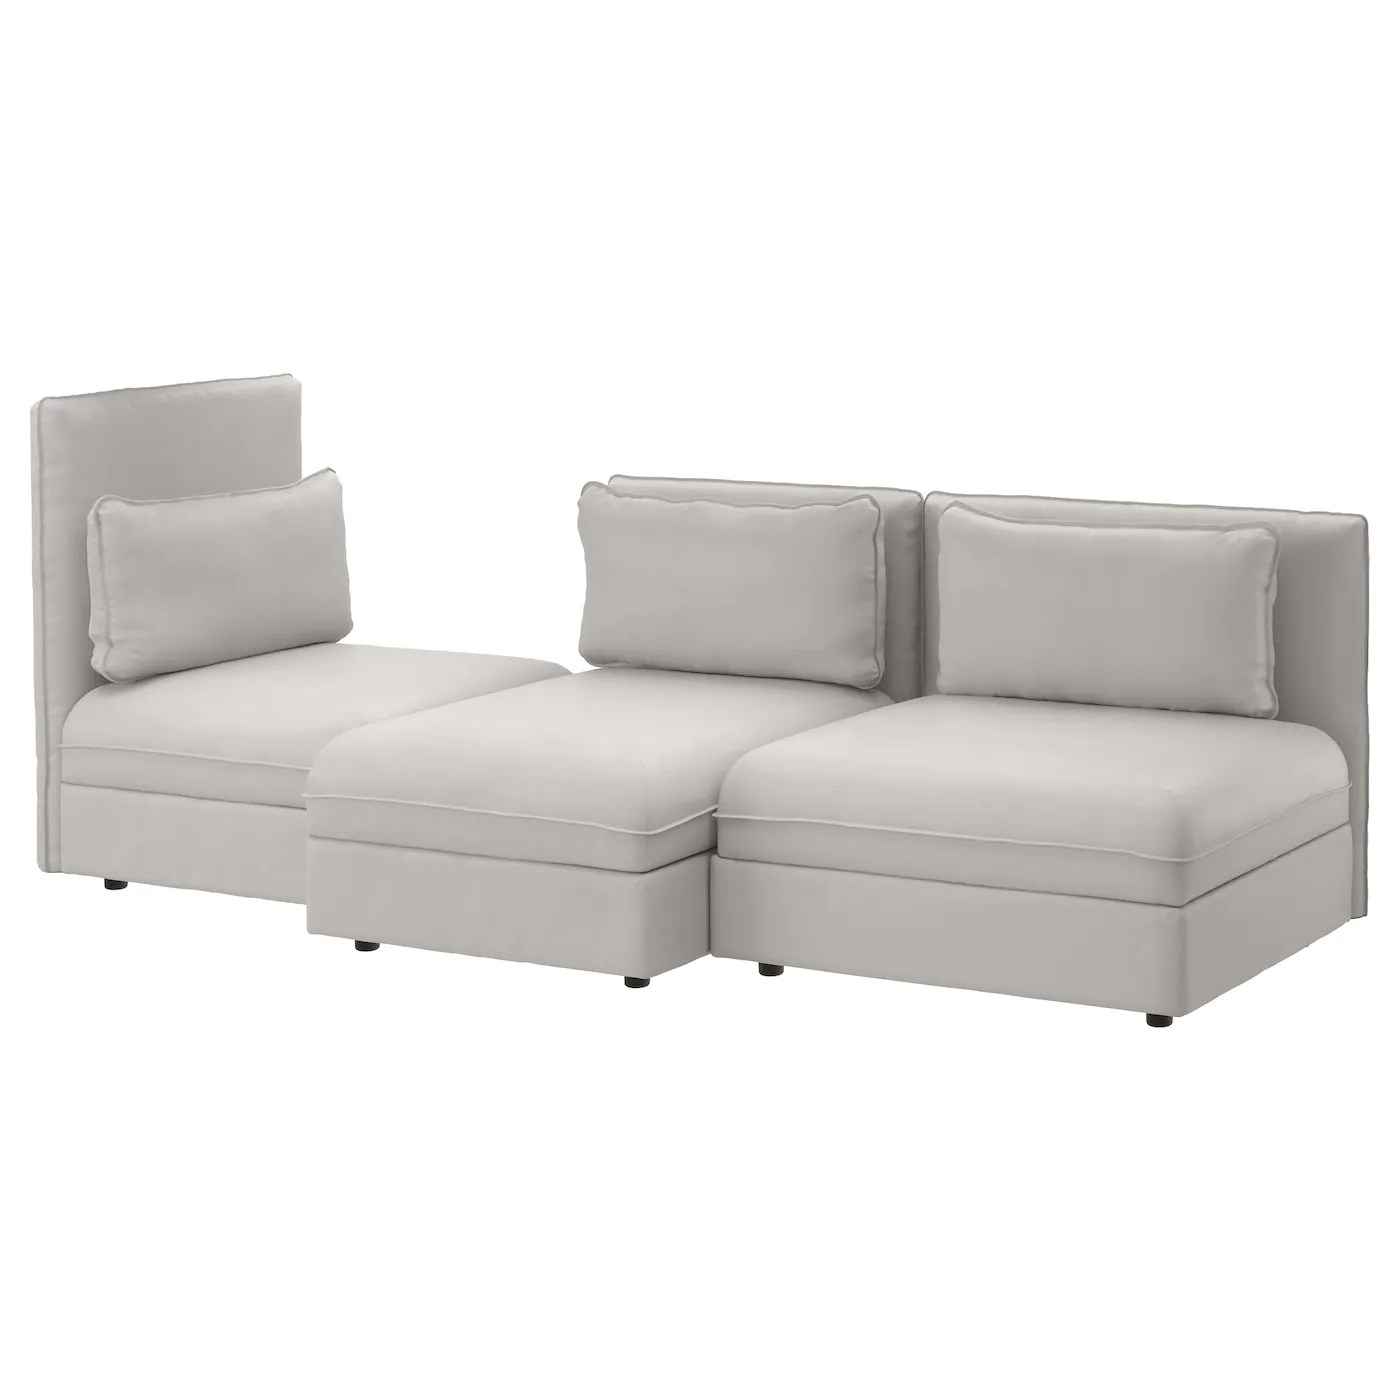 Sofa Vallentuna Vallentuna 3 Seat Sofa Ramna Light Grey Ikea